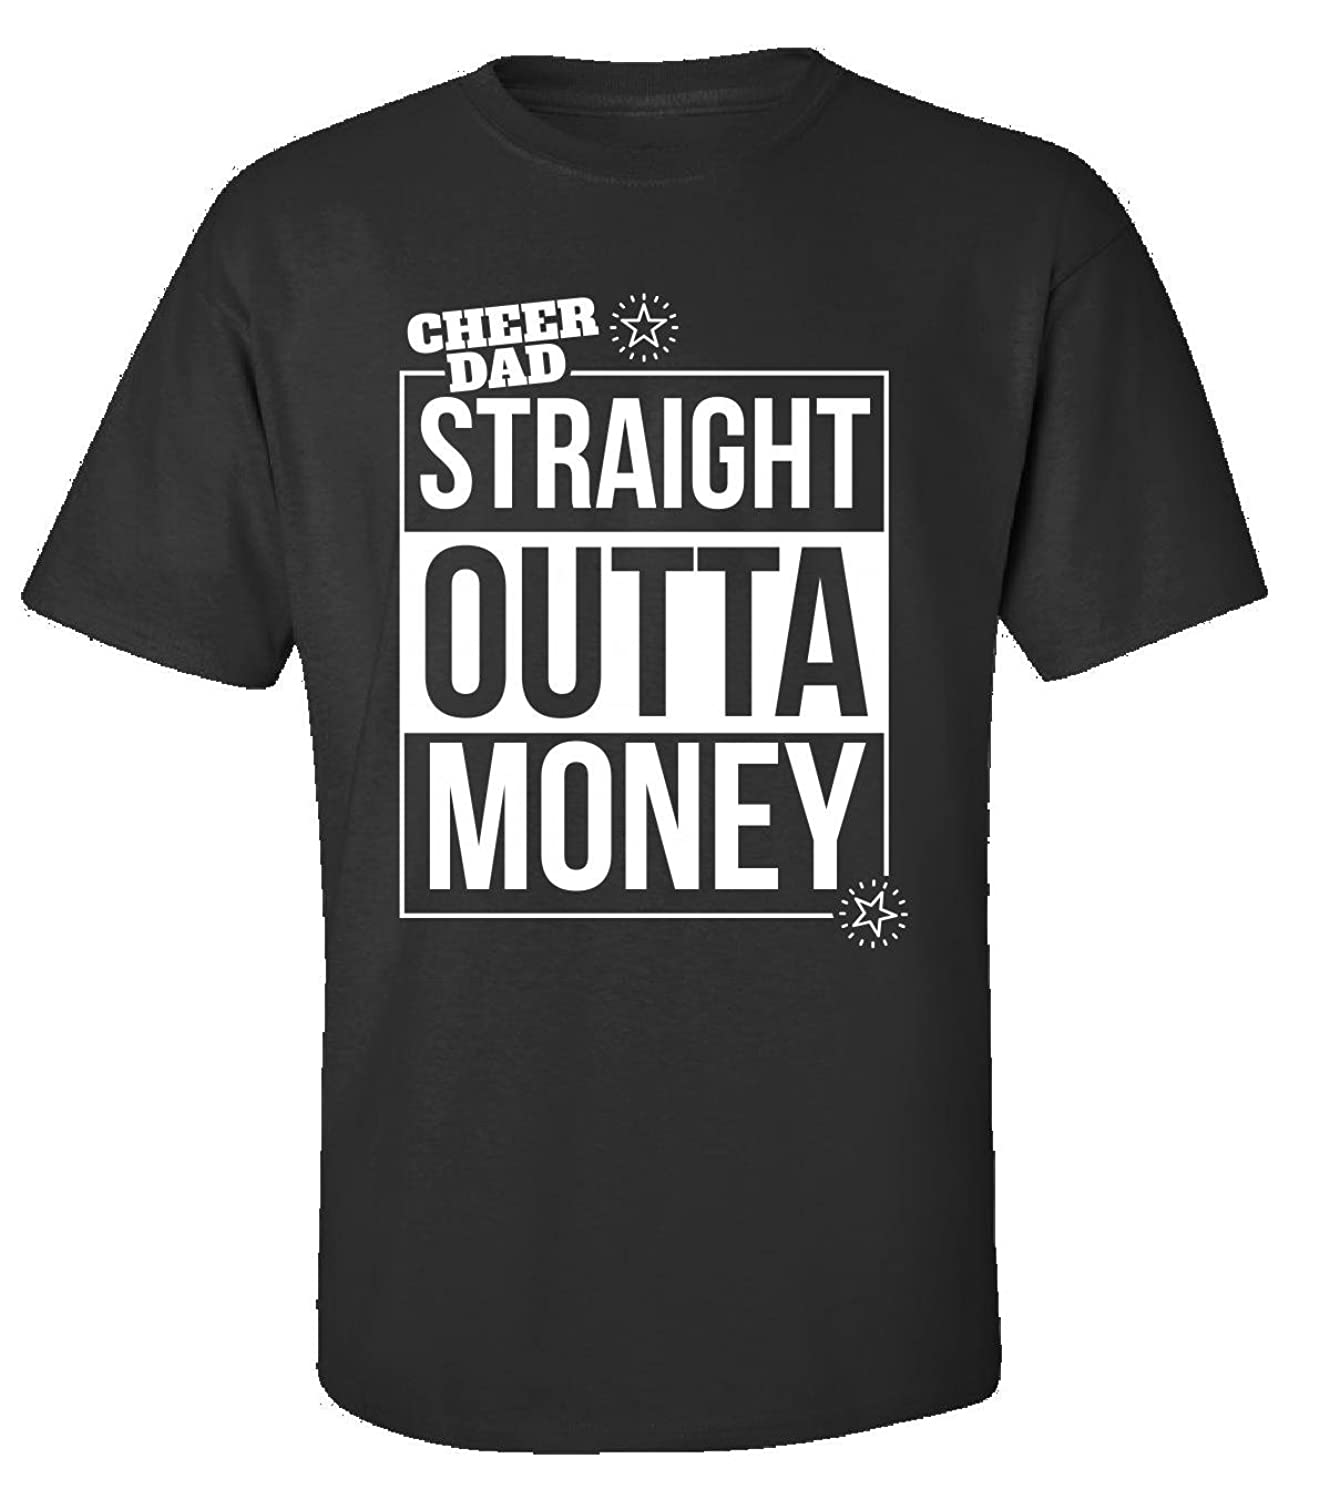 Cheer Dad Straight Outta Money Father Day Gift For Pop Papa - Adult Shirt